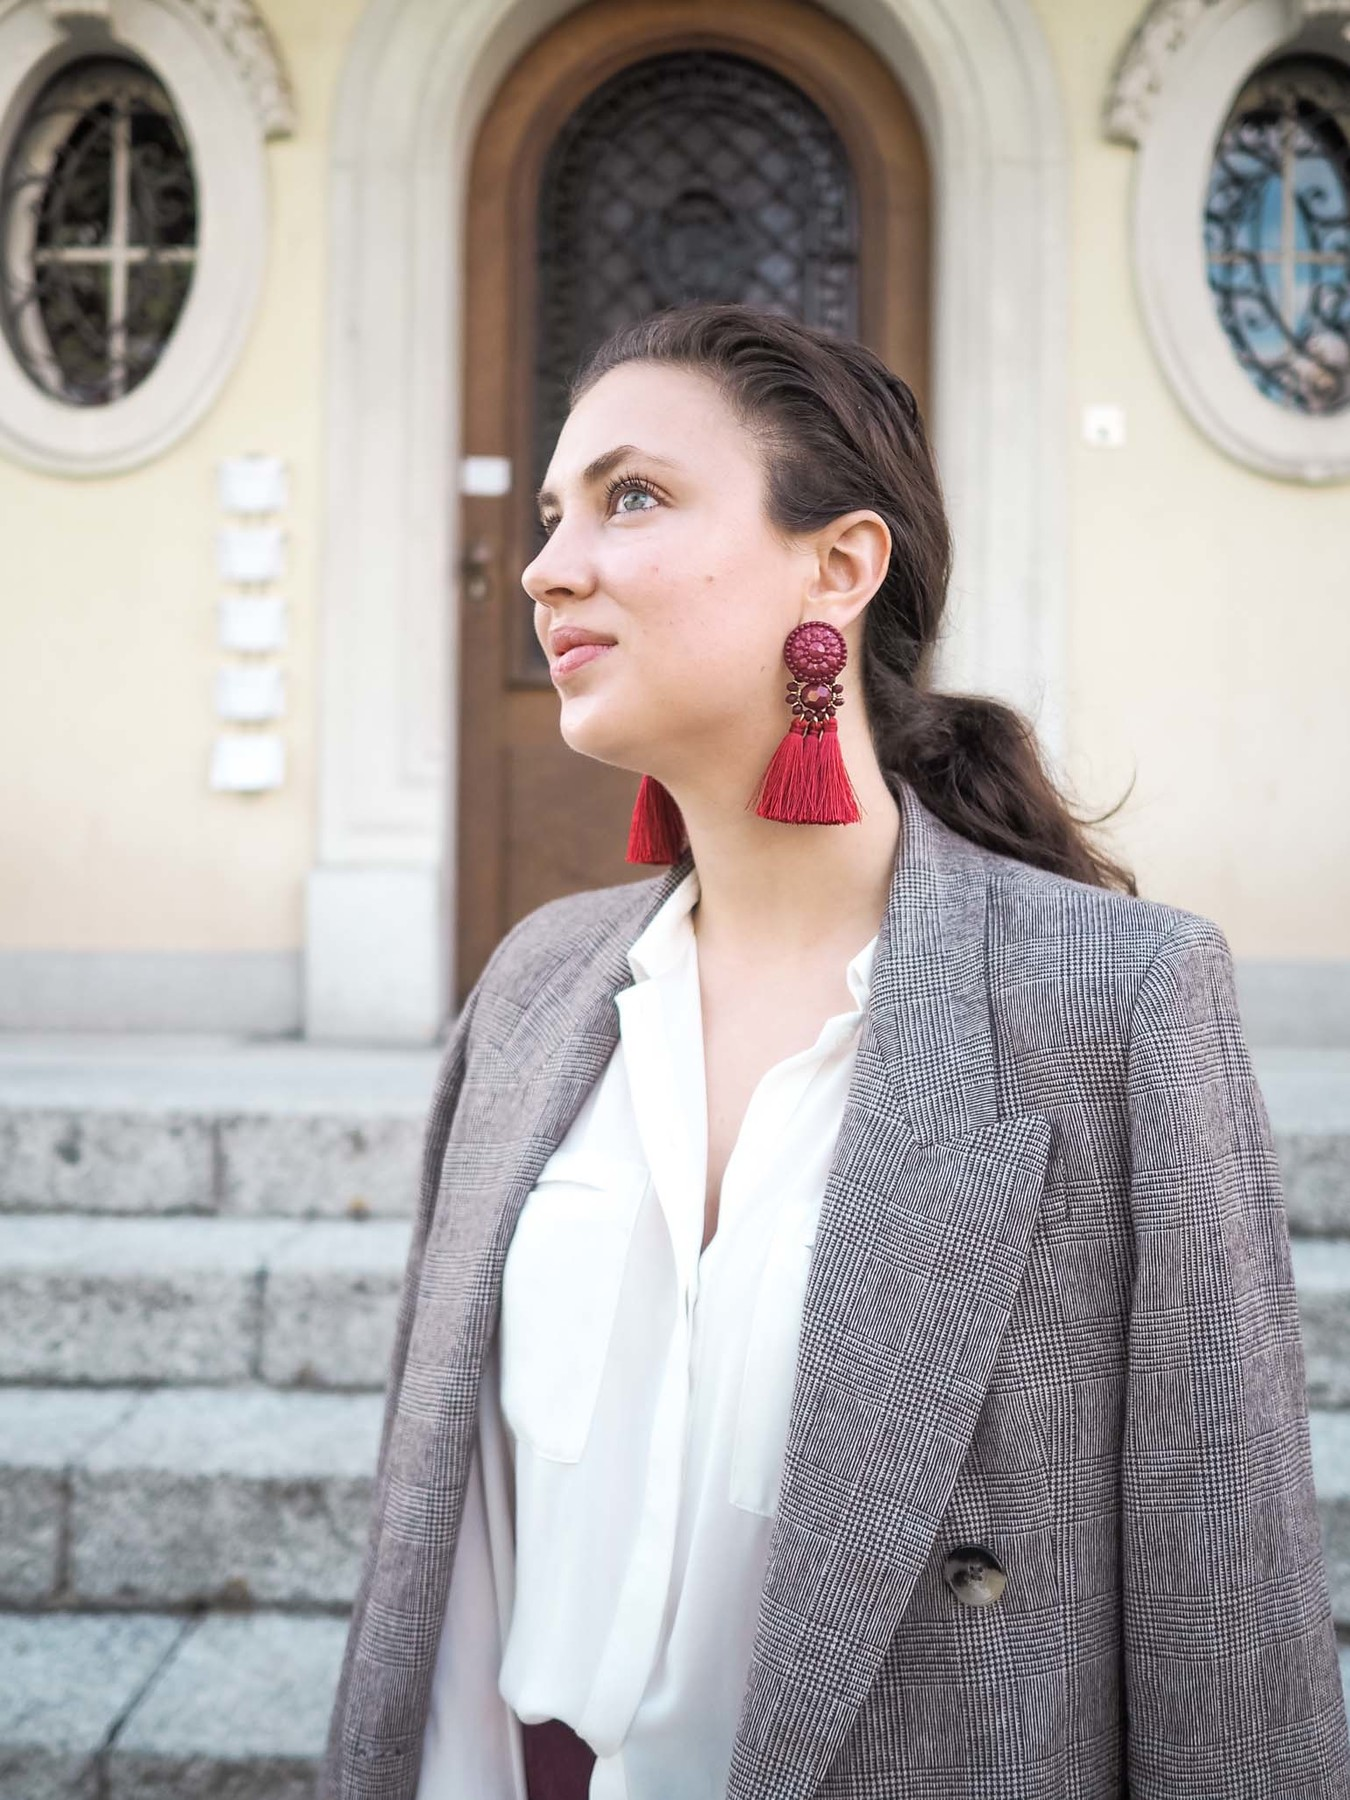 Model wears a grey blazer and trendy tassel earrings in the color oxblood